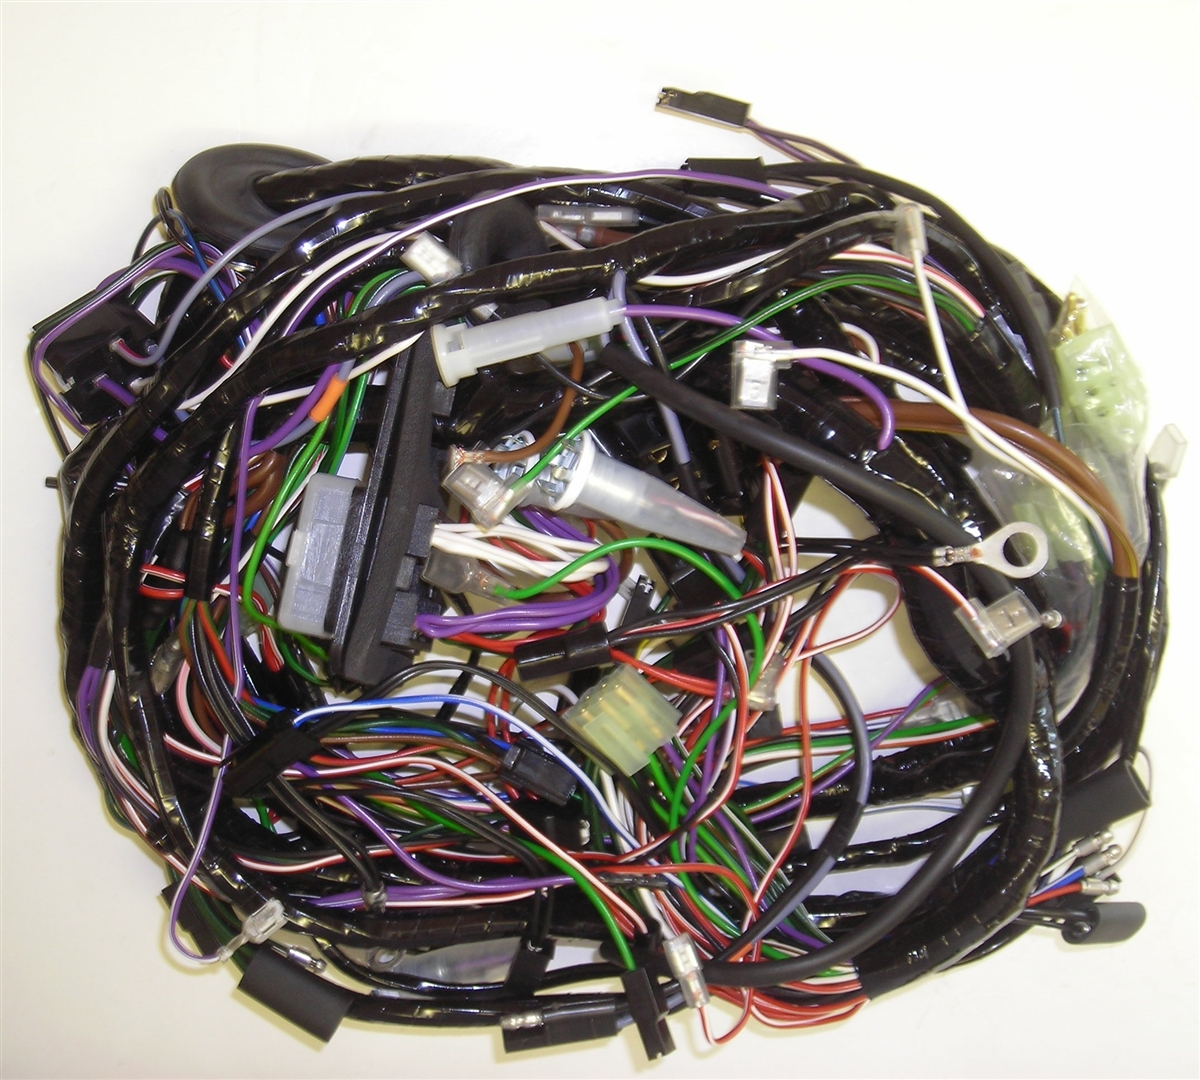 1531(3) 2?1443618008 spitfire1500 main wiring harness triumph spitfire wiring harness at gsmx.co